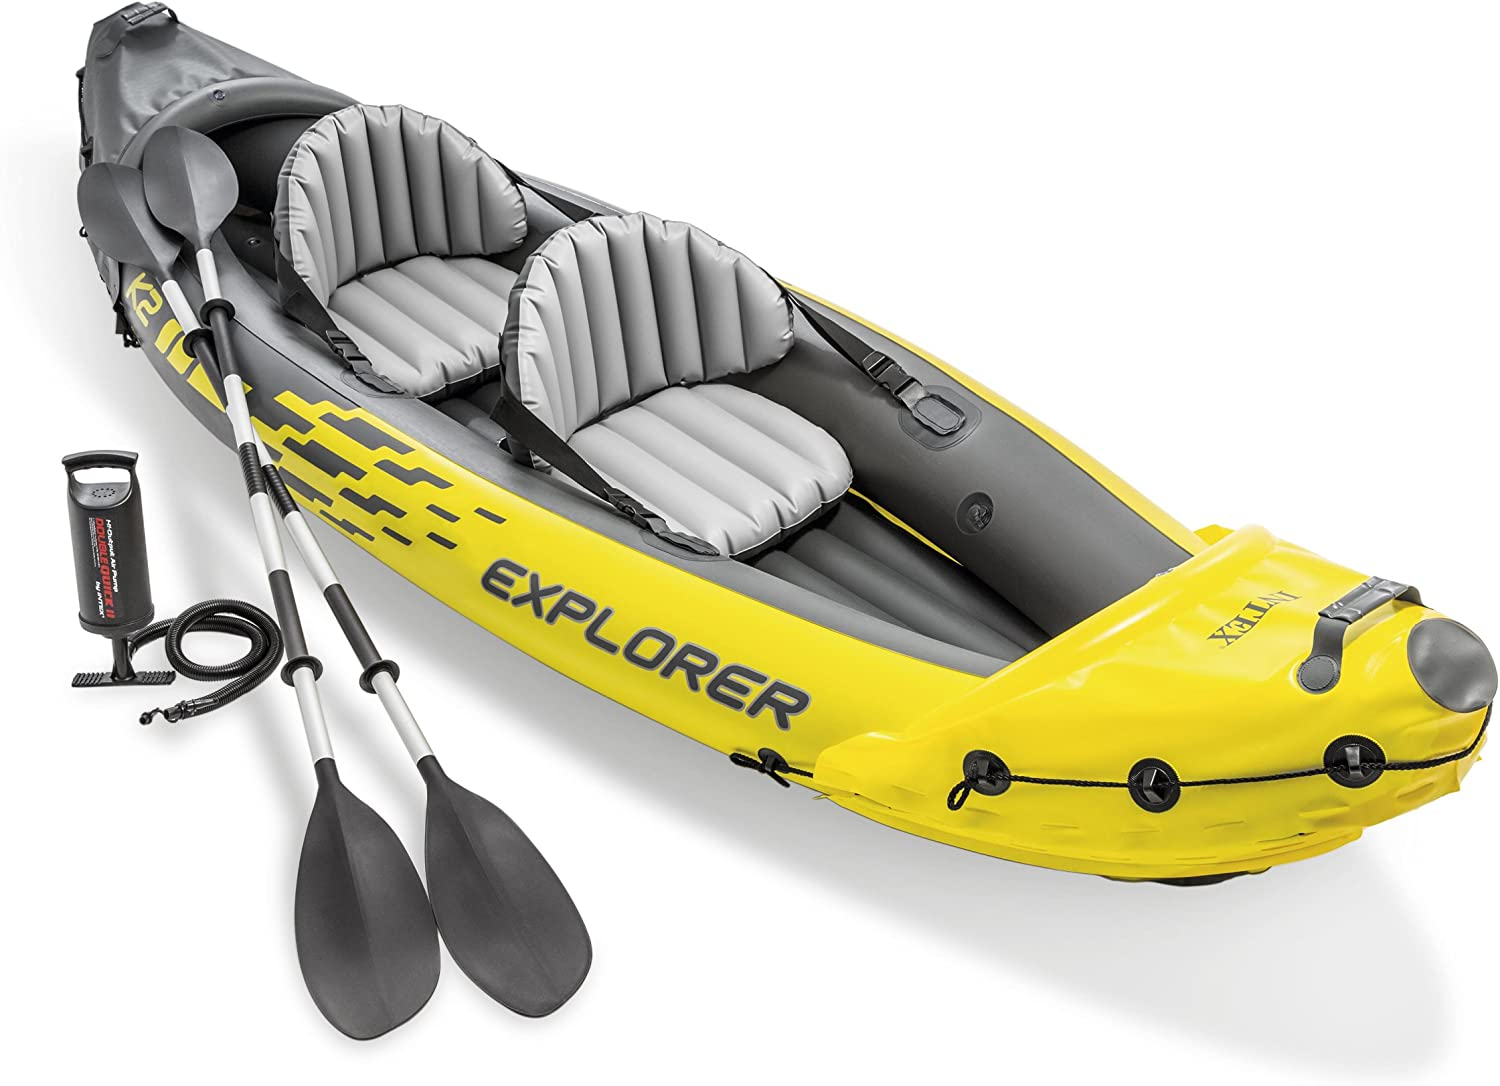 Intex Explorer K2 Kayak, 2 Person Inflatable